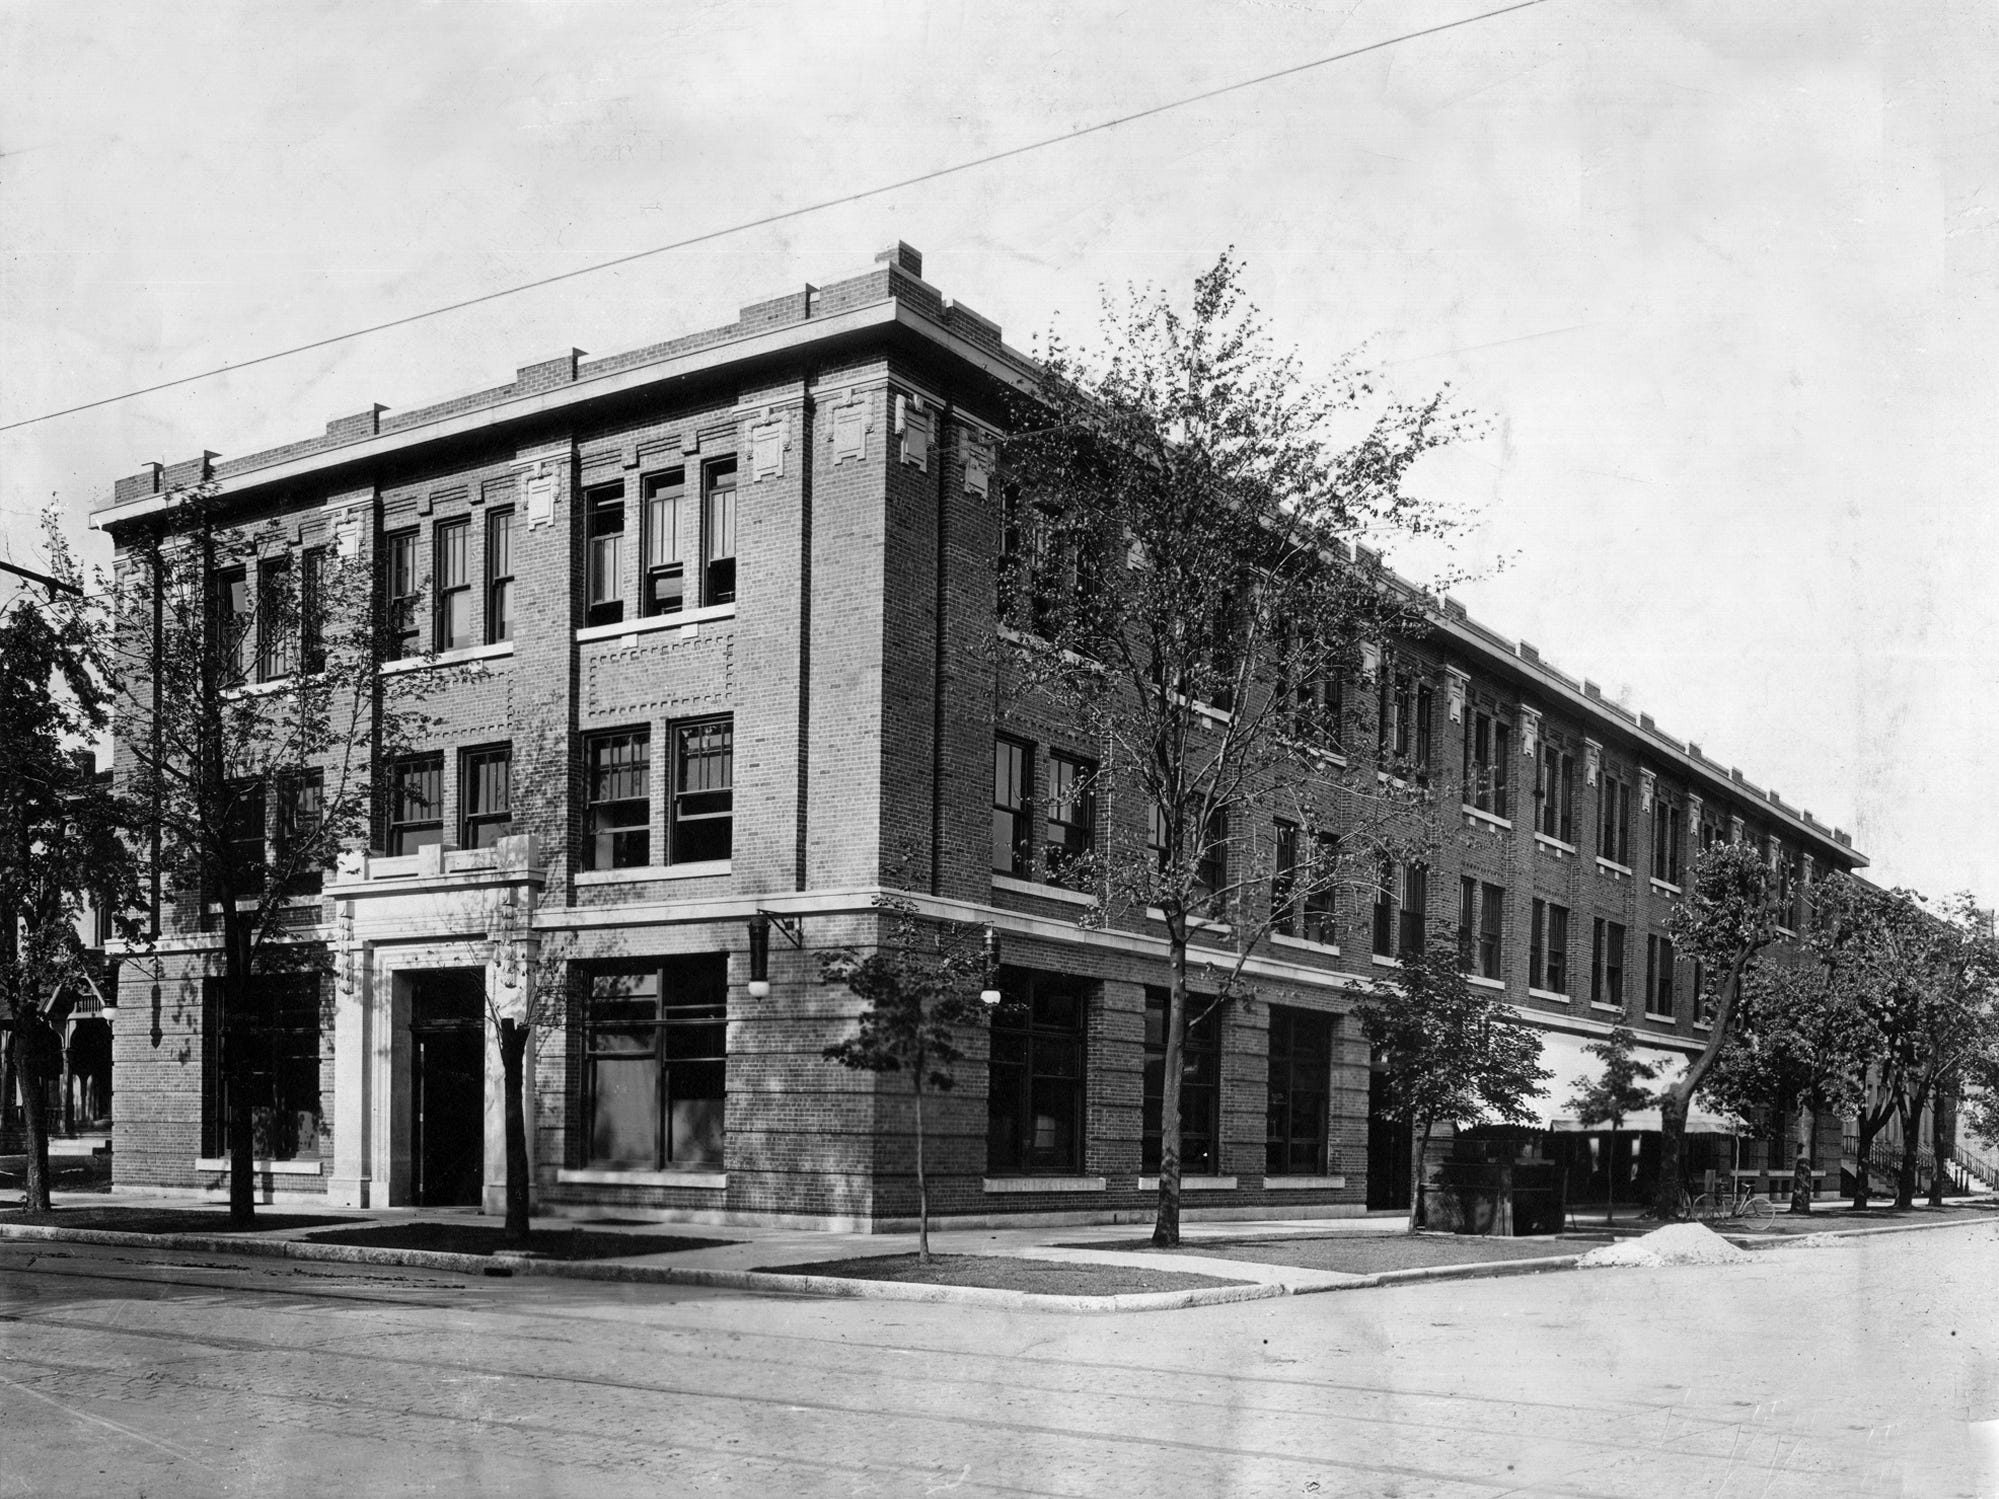 This view of the Star building, 301 North Pennsylvania Street, was taken shortly after it was built in 1907.